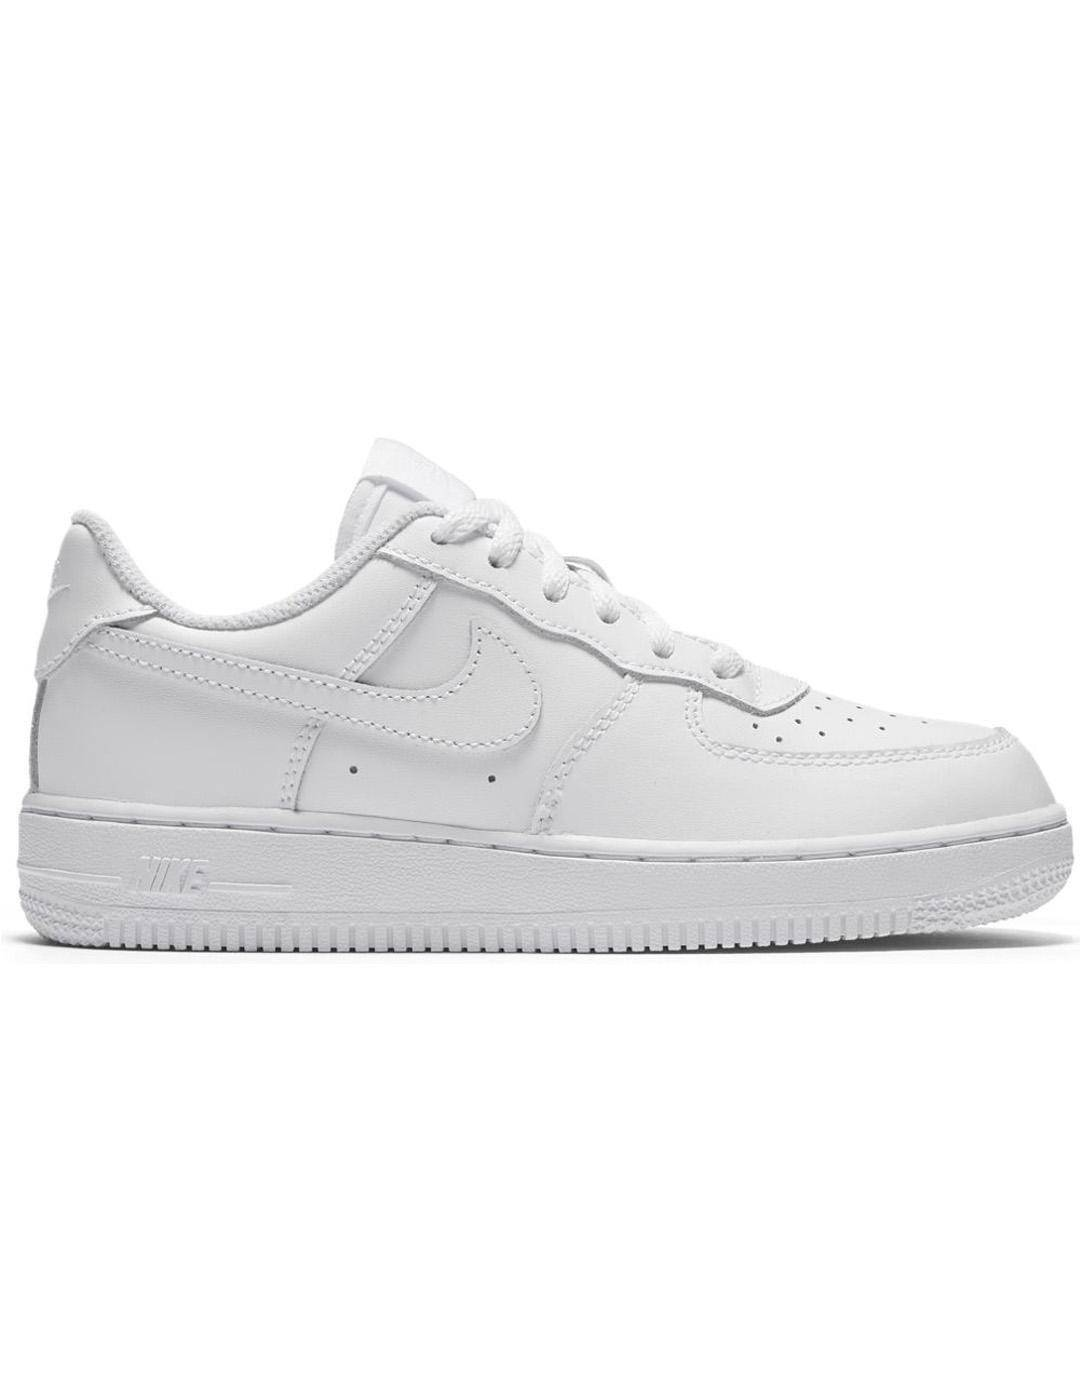 Nike Air Force 1 (Ps) Blanco Niño/a - 33